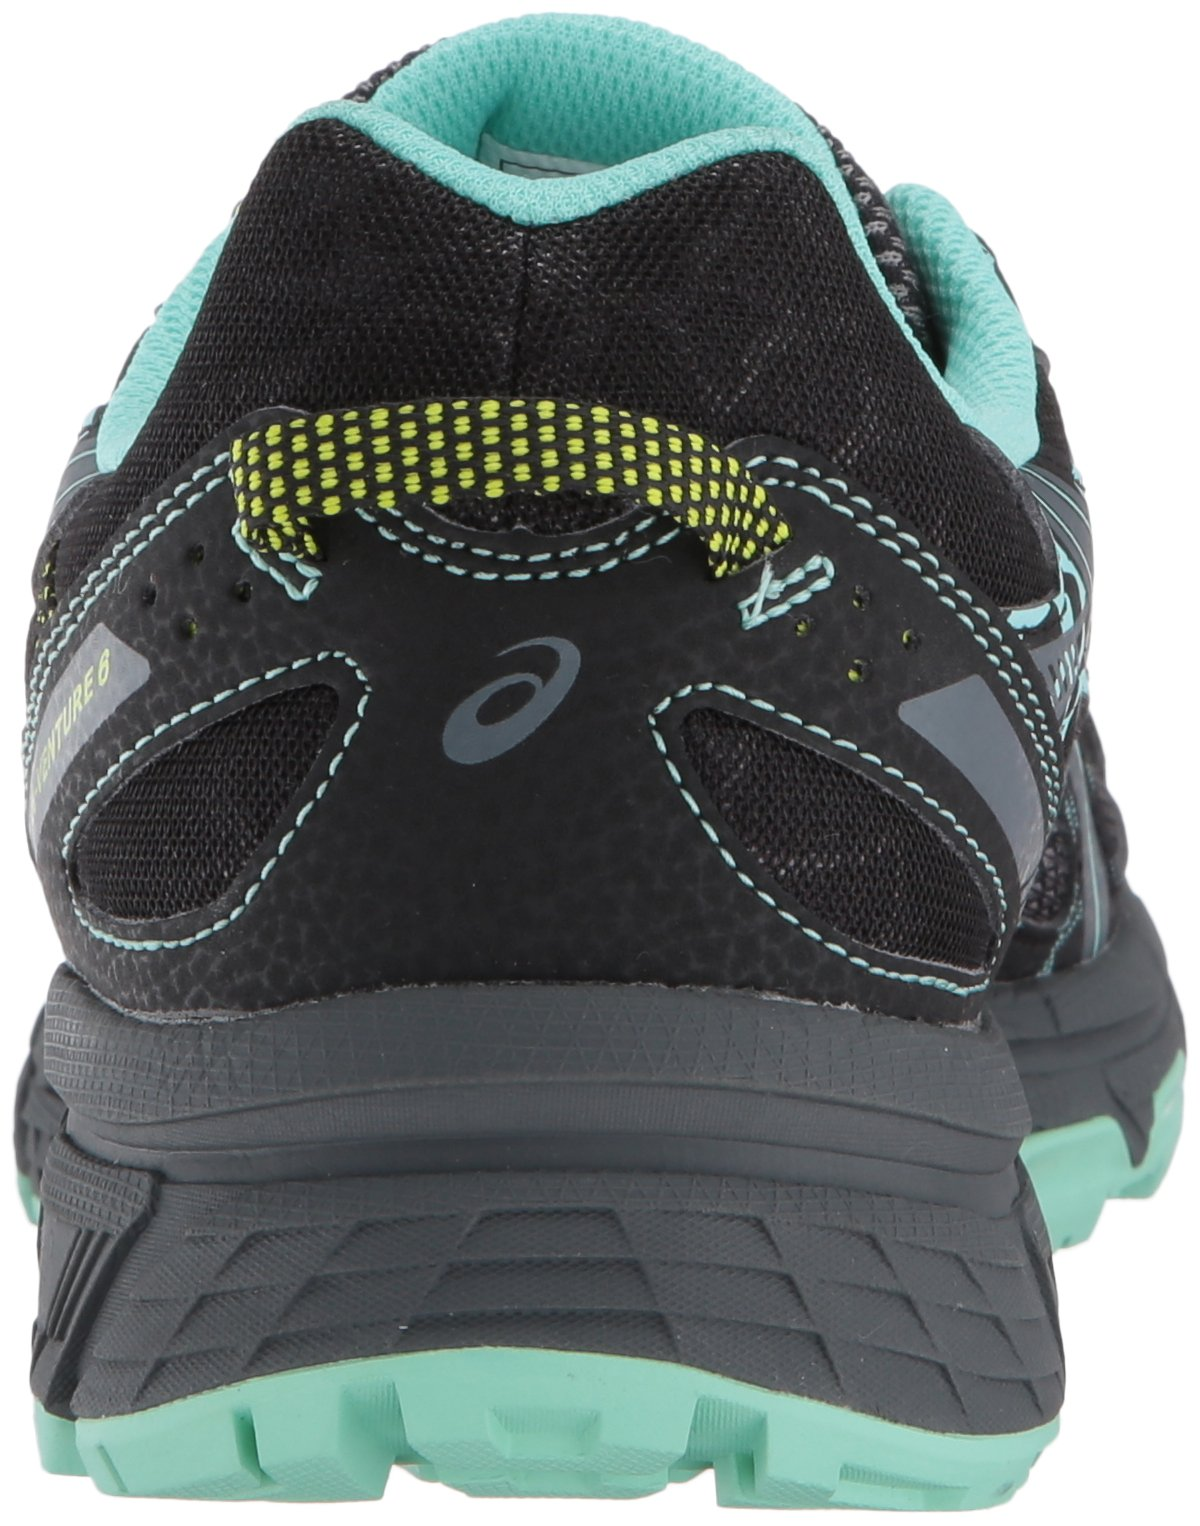 ASICS Women's Gel-Venture 6 Running-Shoes,Black/Carbon/Neon Lime,5 Medium US by ASICS (Image #2)